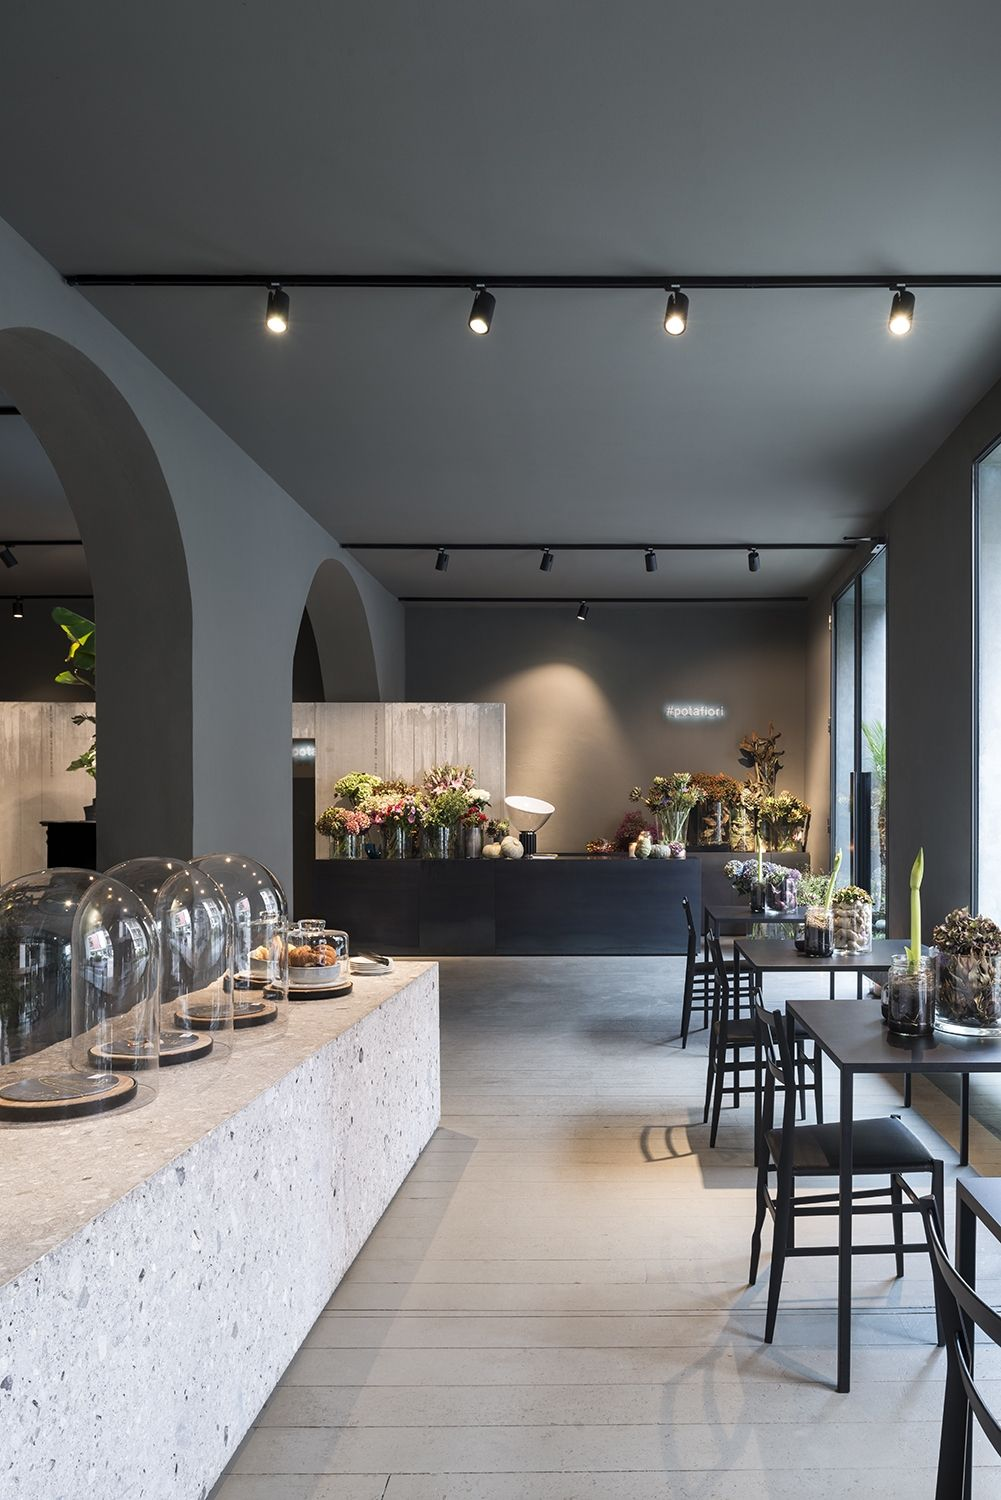 Potafiori flower shop in milan by castelli costruzioni for Interni design studio